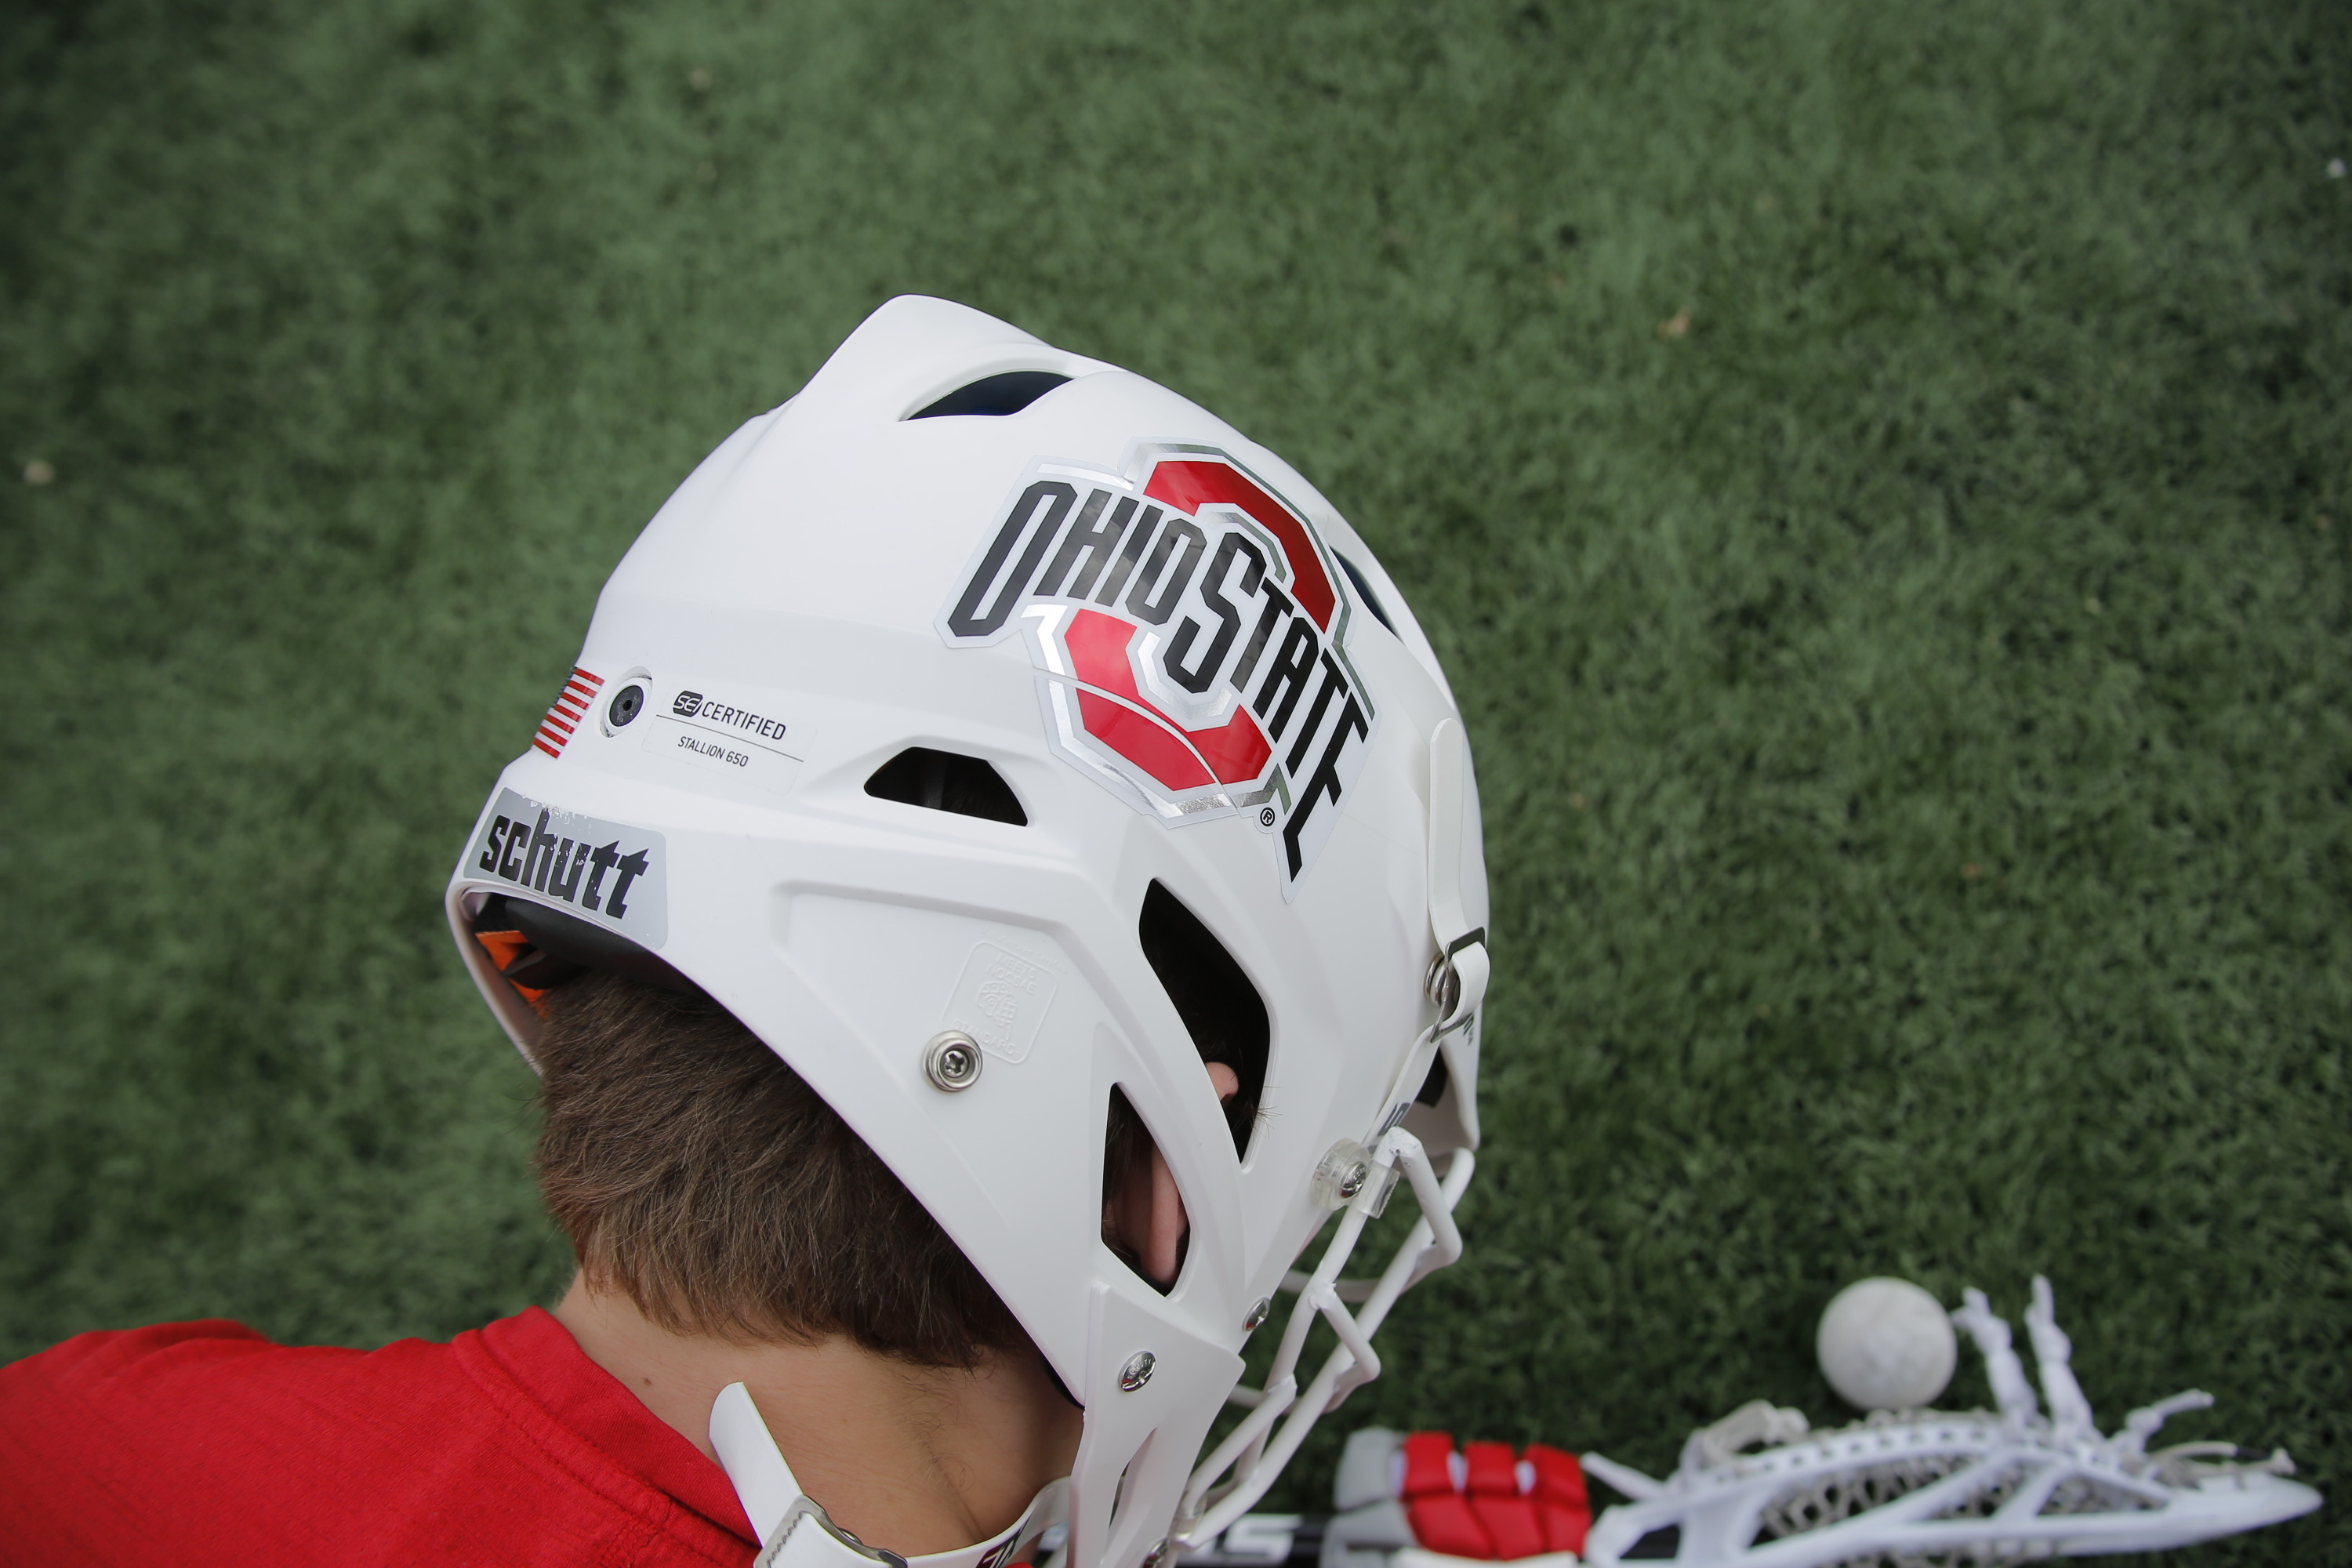 Ohio State will debut a white helmet for the first time this weekend at the Midwest Lacrosse Classic in Detroit.